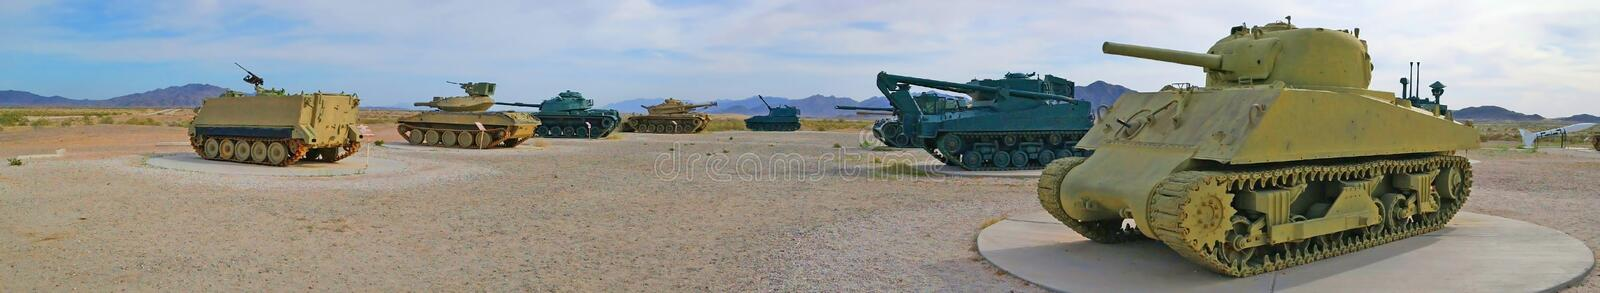 Old Military Tanks & Troop Carriers - Panorama. A panoramic view of a public display of old military tanks and troop carriers. Found near the Yuma Proving Ground royalty free stock images